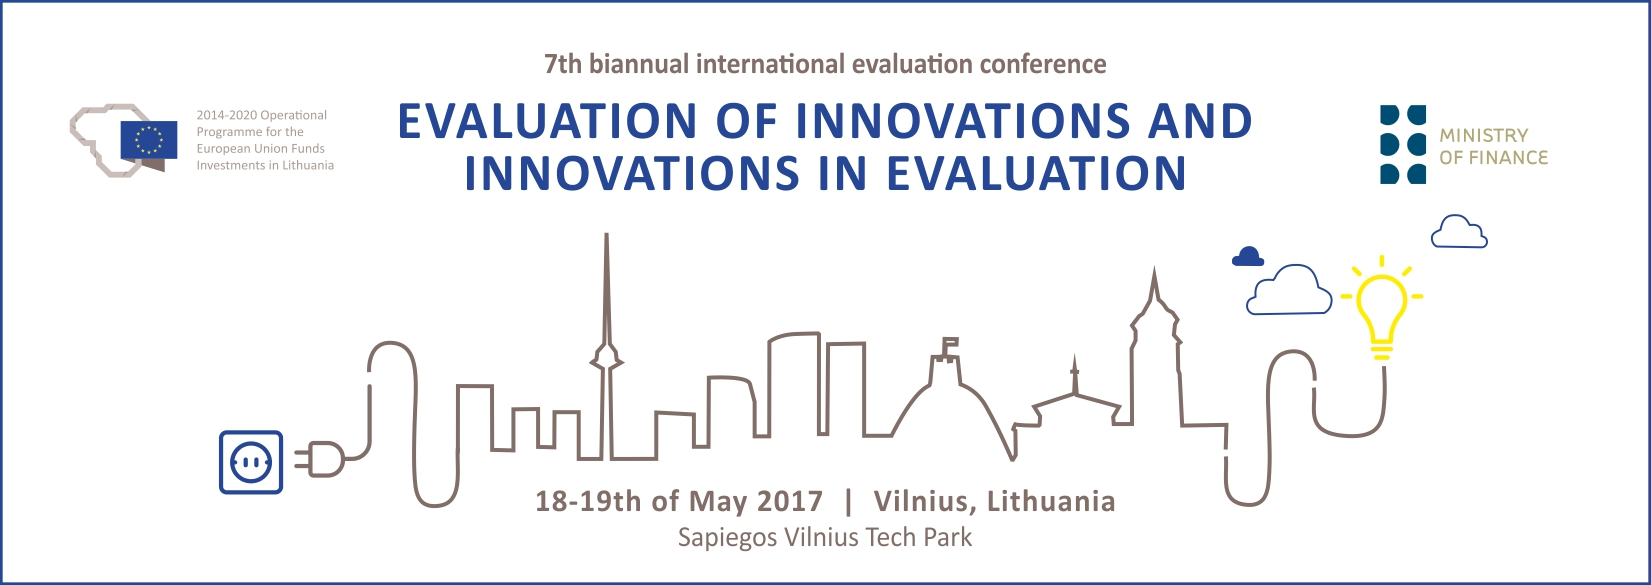 Events 2020.The 7th Biannual International Evaluation Conference